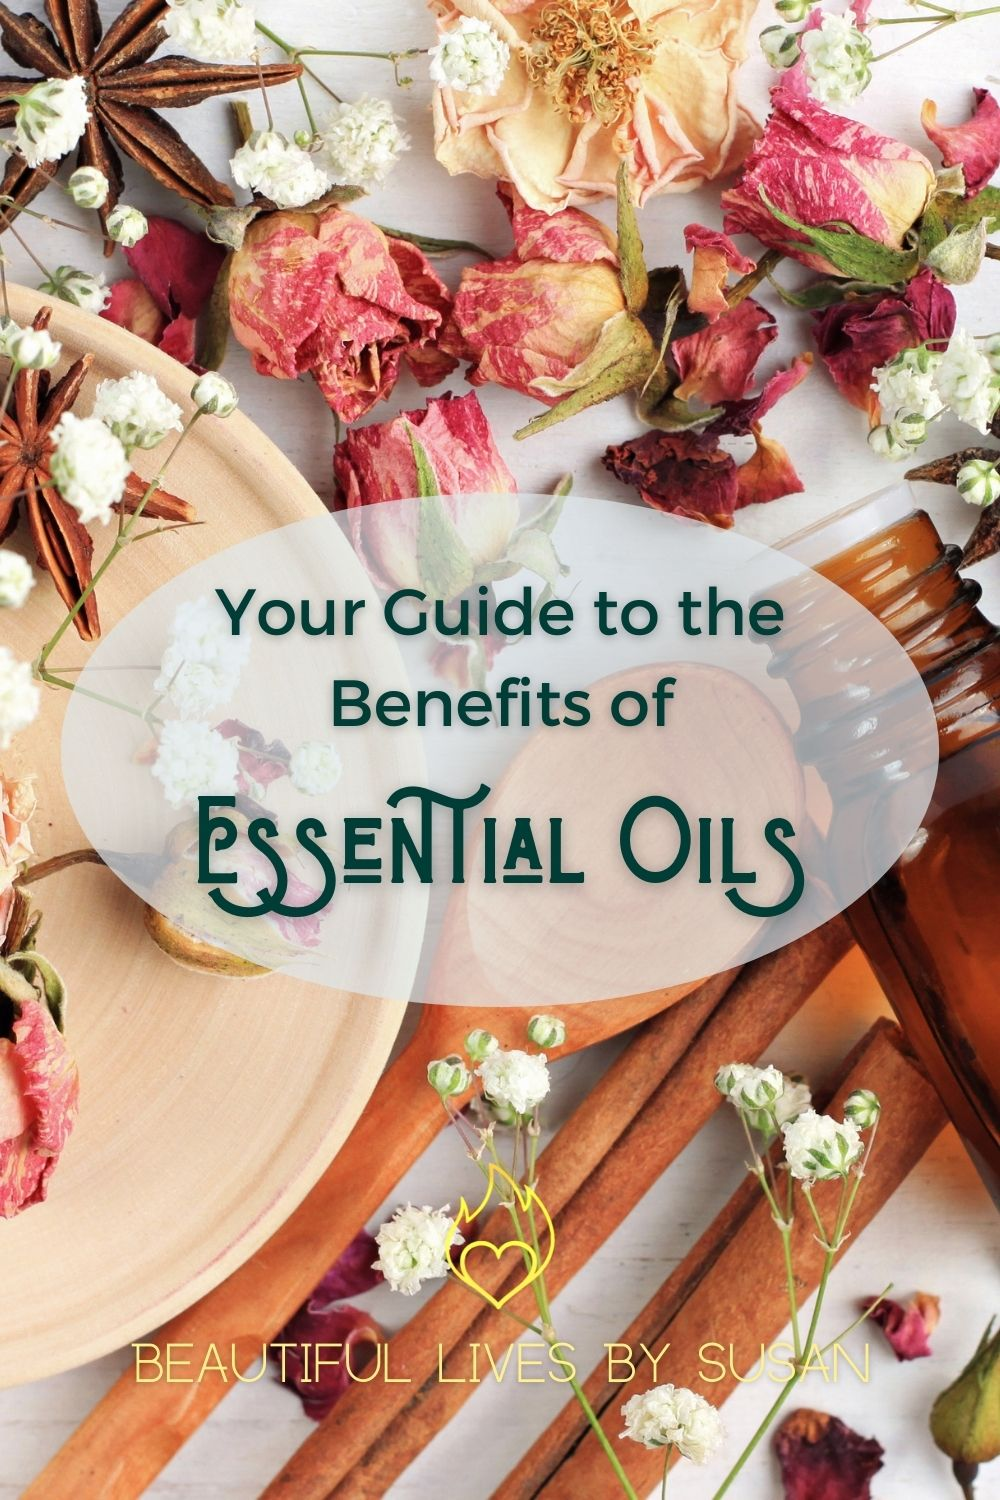 Your Guide to the Benefits of Essential Oils